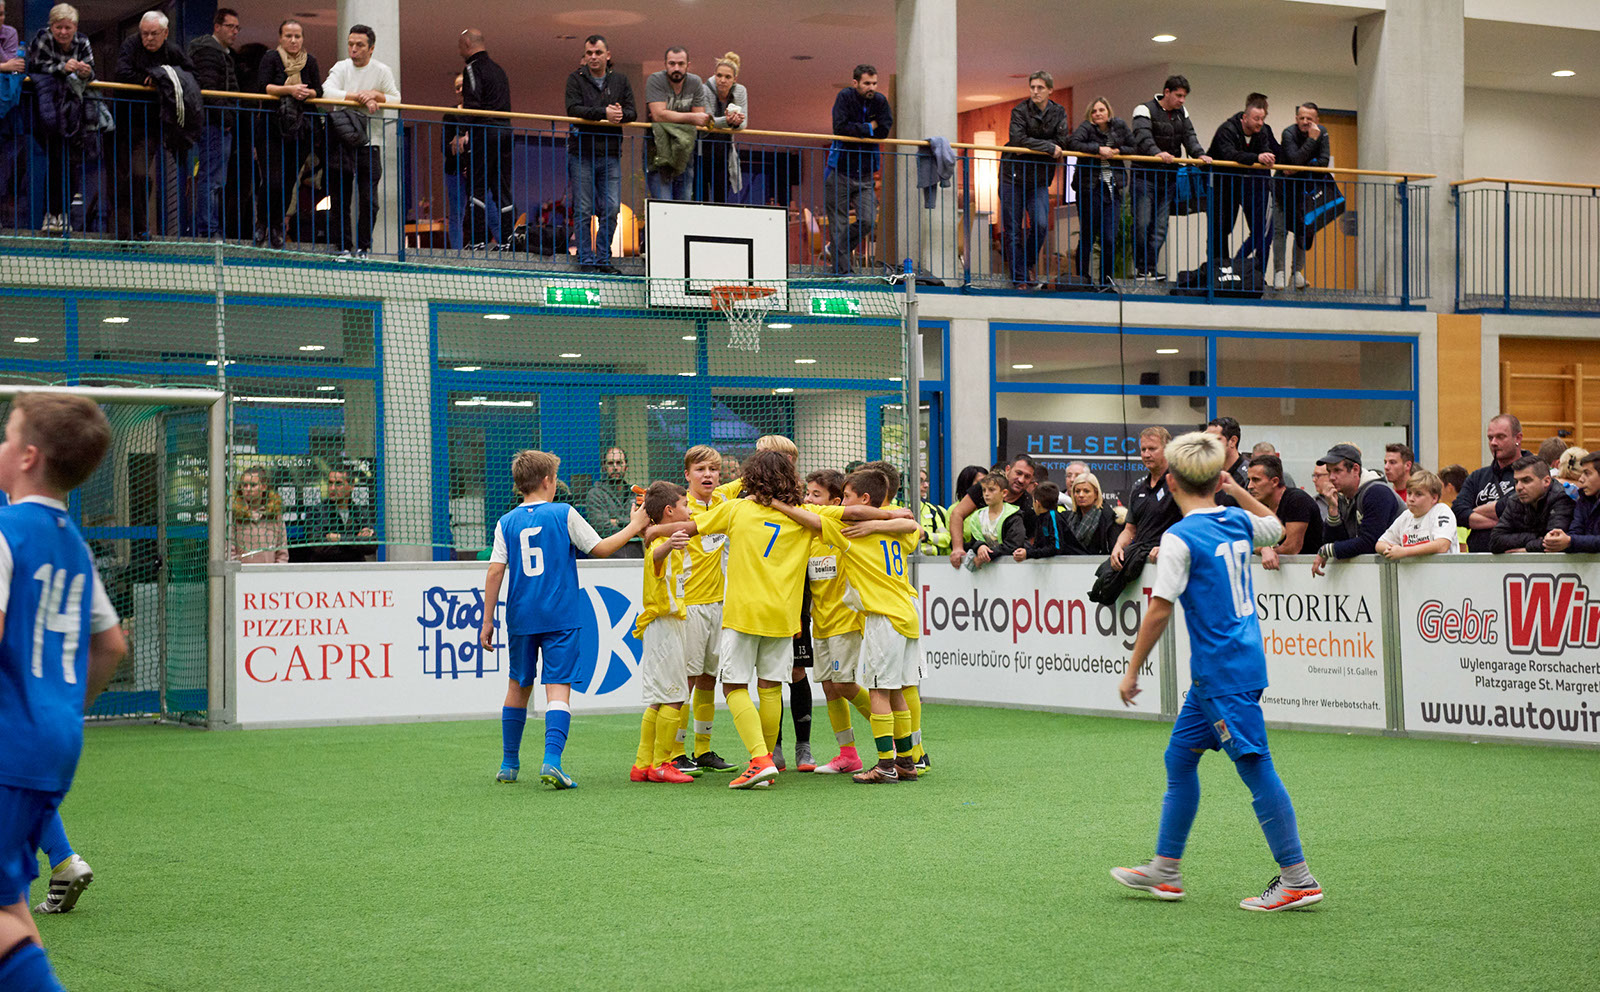 Bodensee-Cup_20171112_173807.jpg